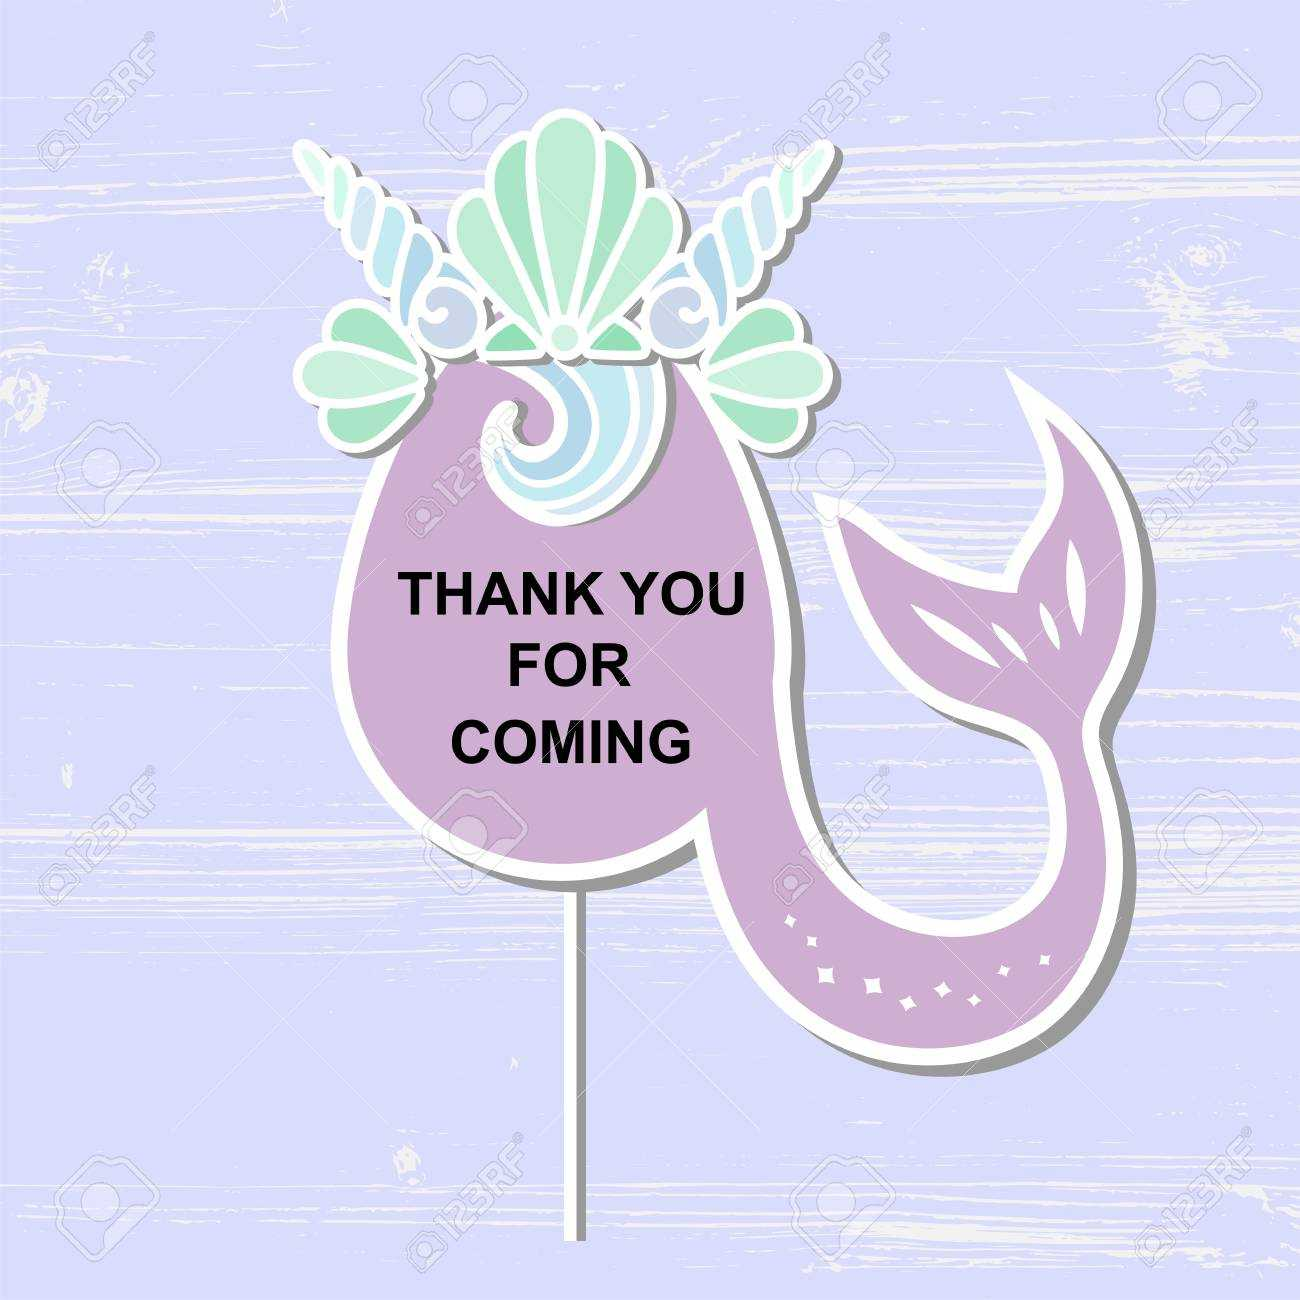 Template With Mermaid's Crown And Tail For Party Invitation,.. In Template For Baby Shower Thank You Cards